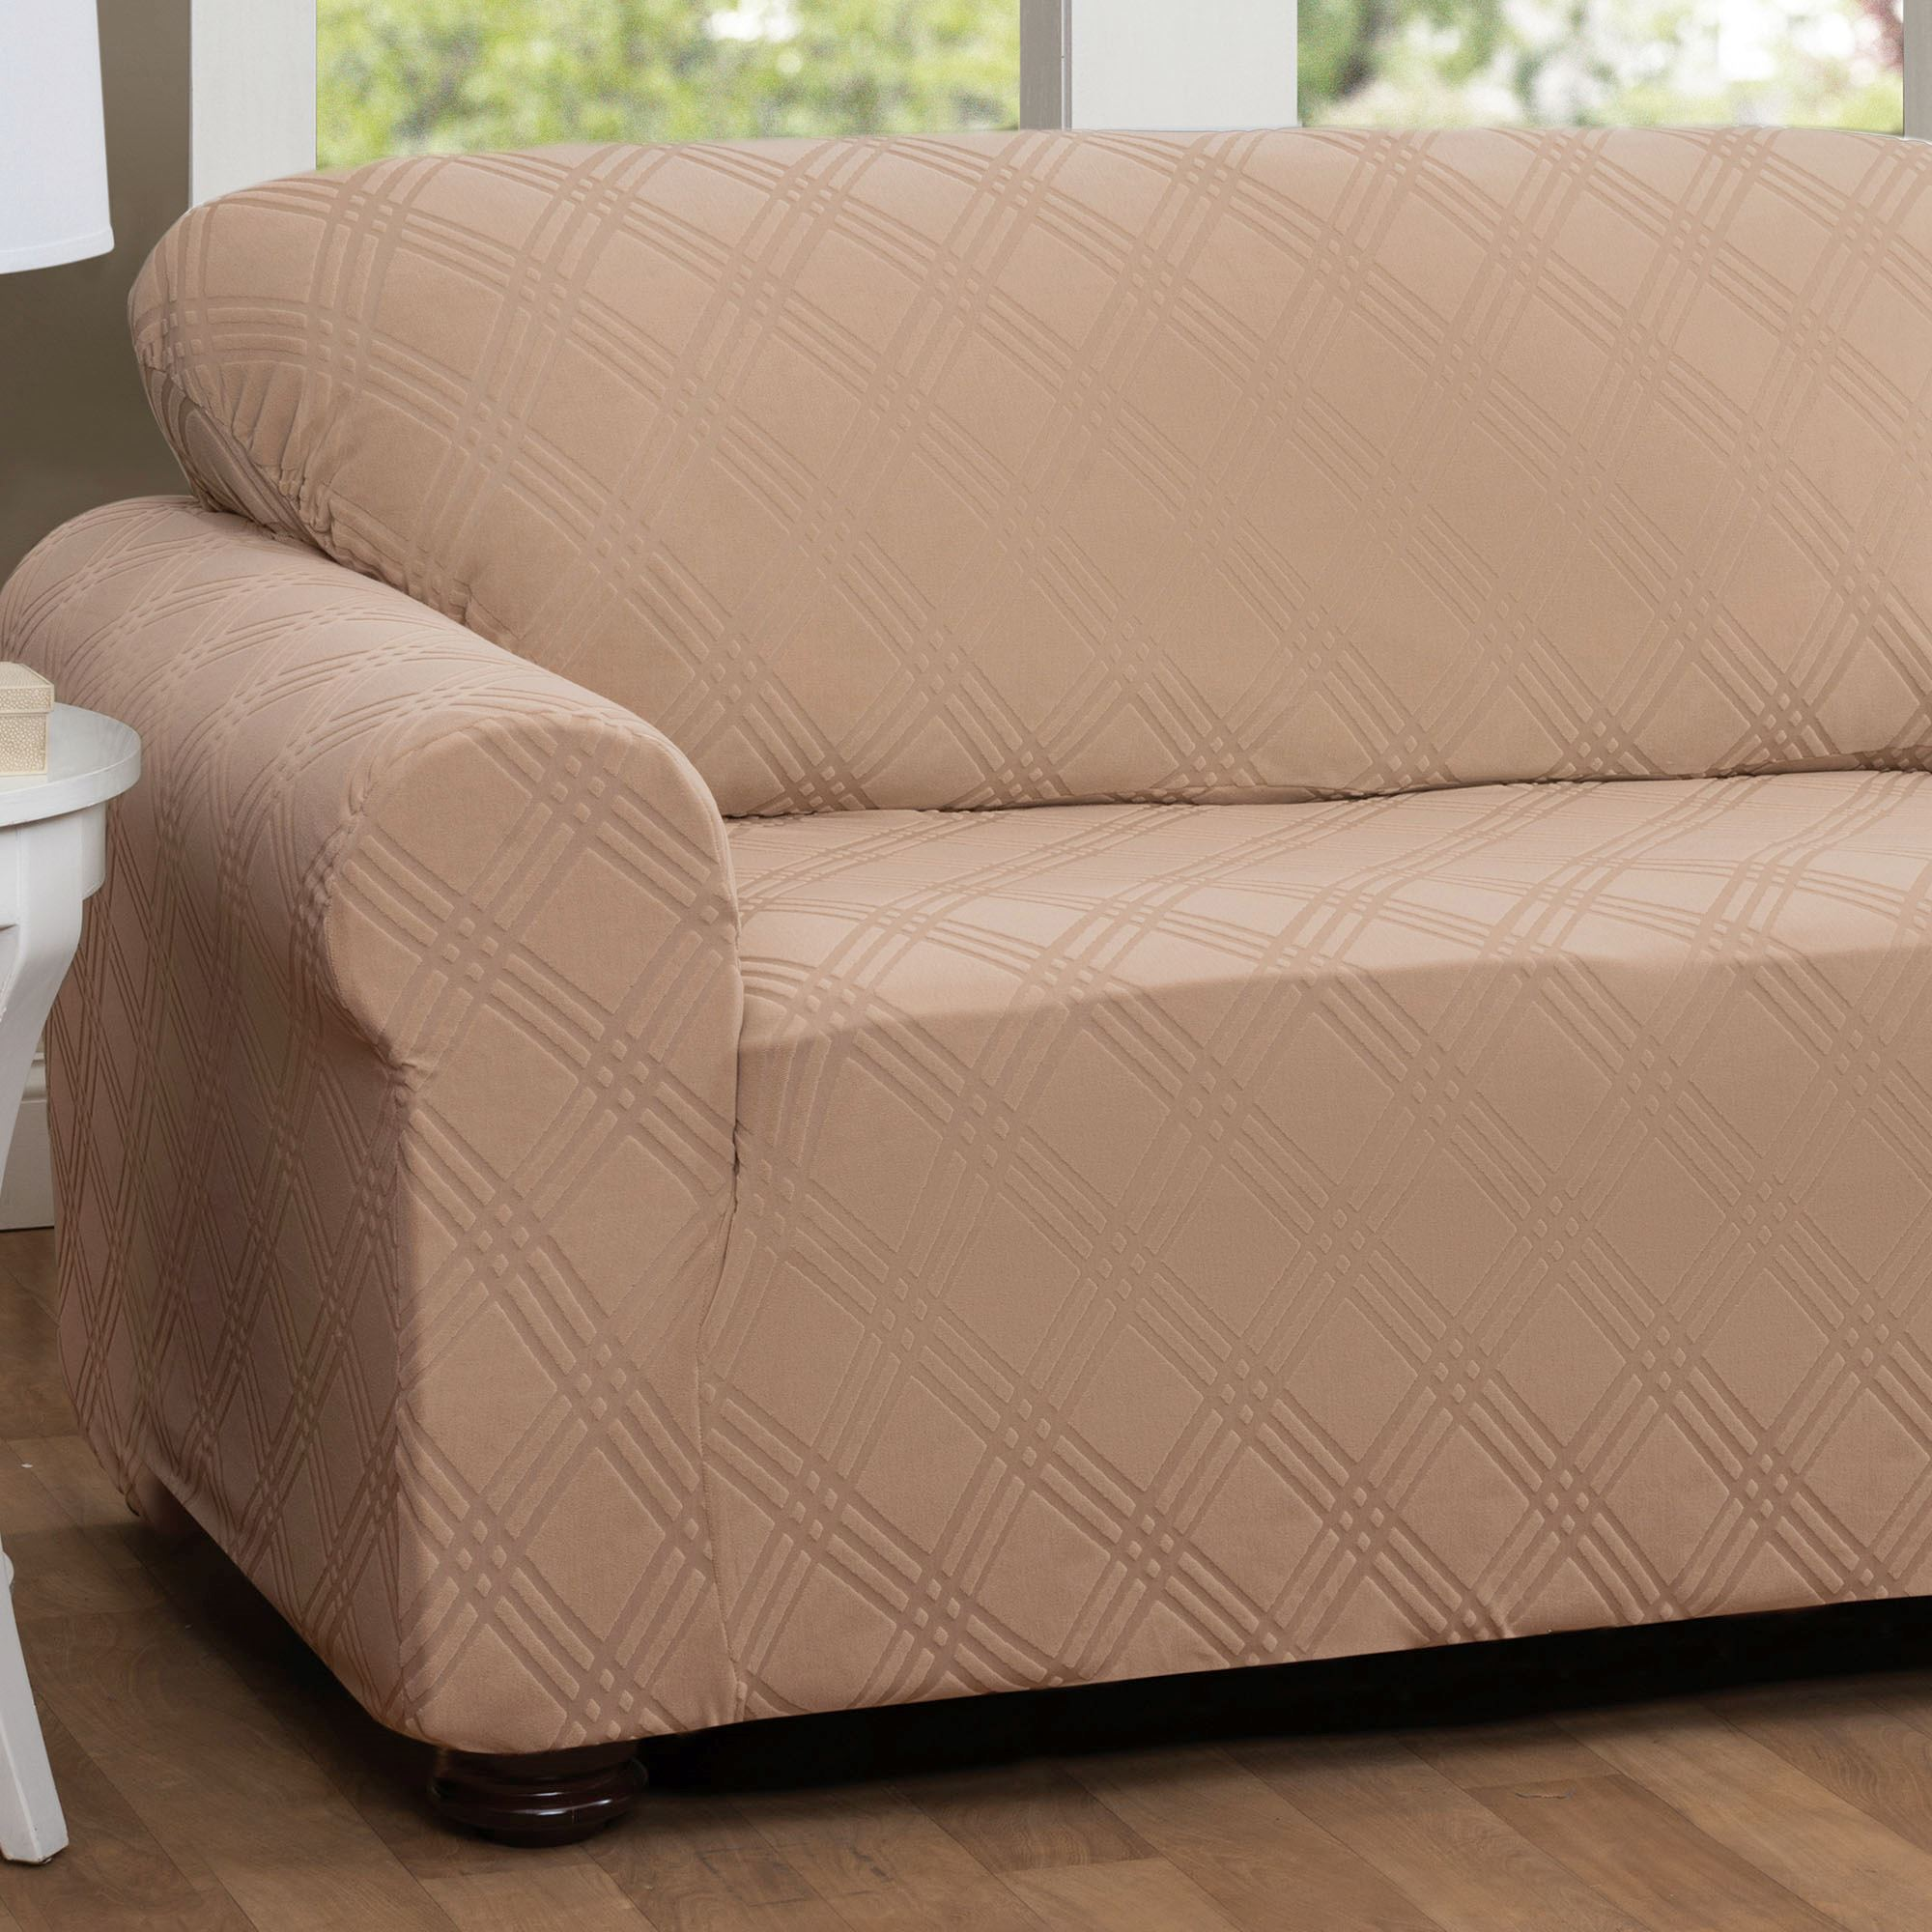 sofa surefitcottonducktcushionsofaslipcover duck fit cotton t product cushion cfm sure master slipcover hayneedle